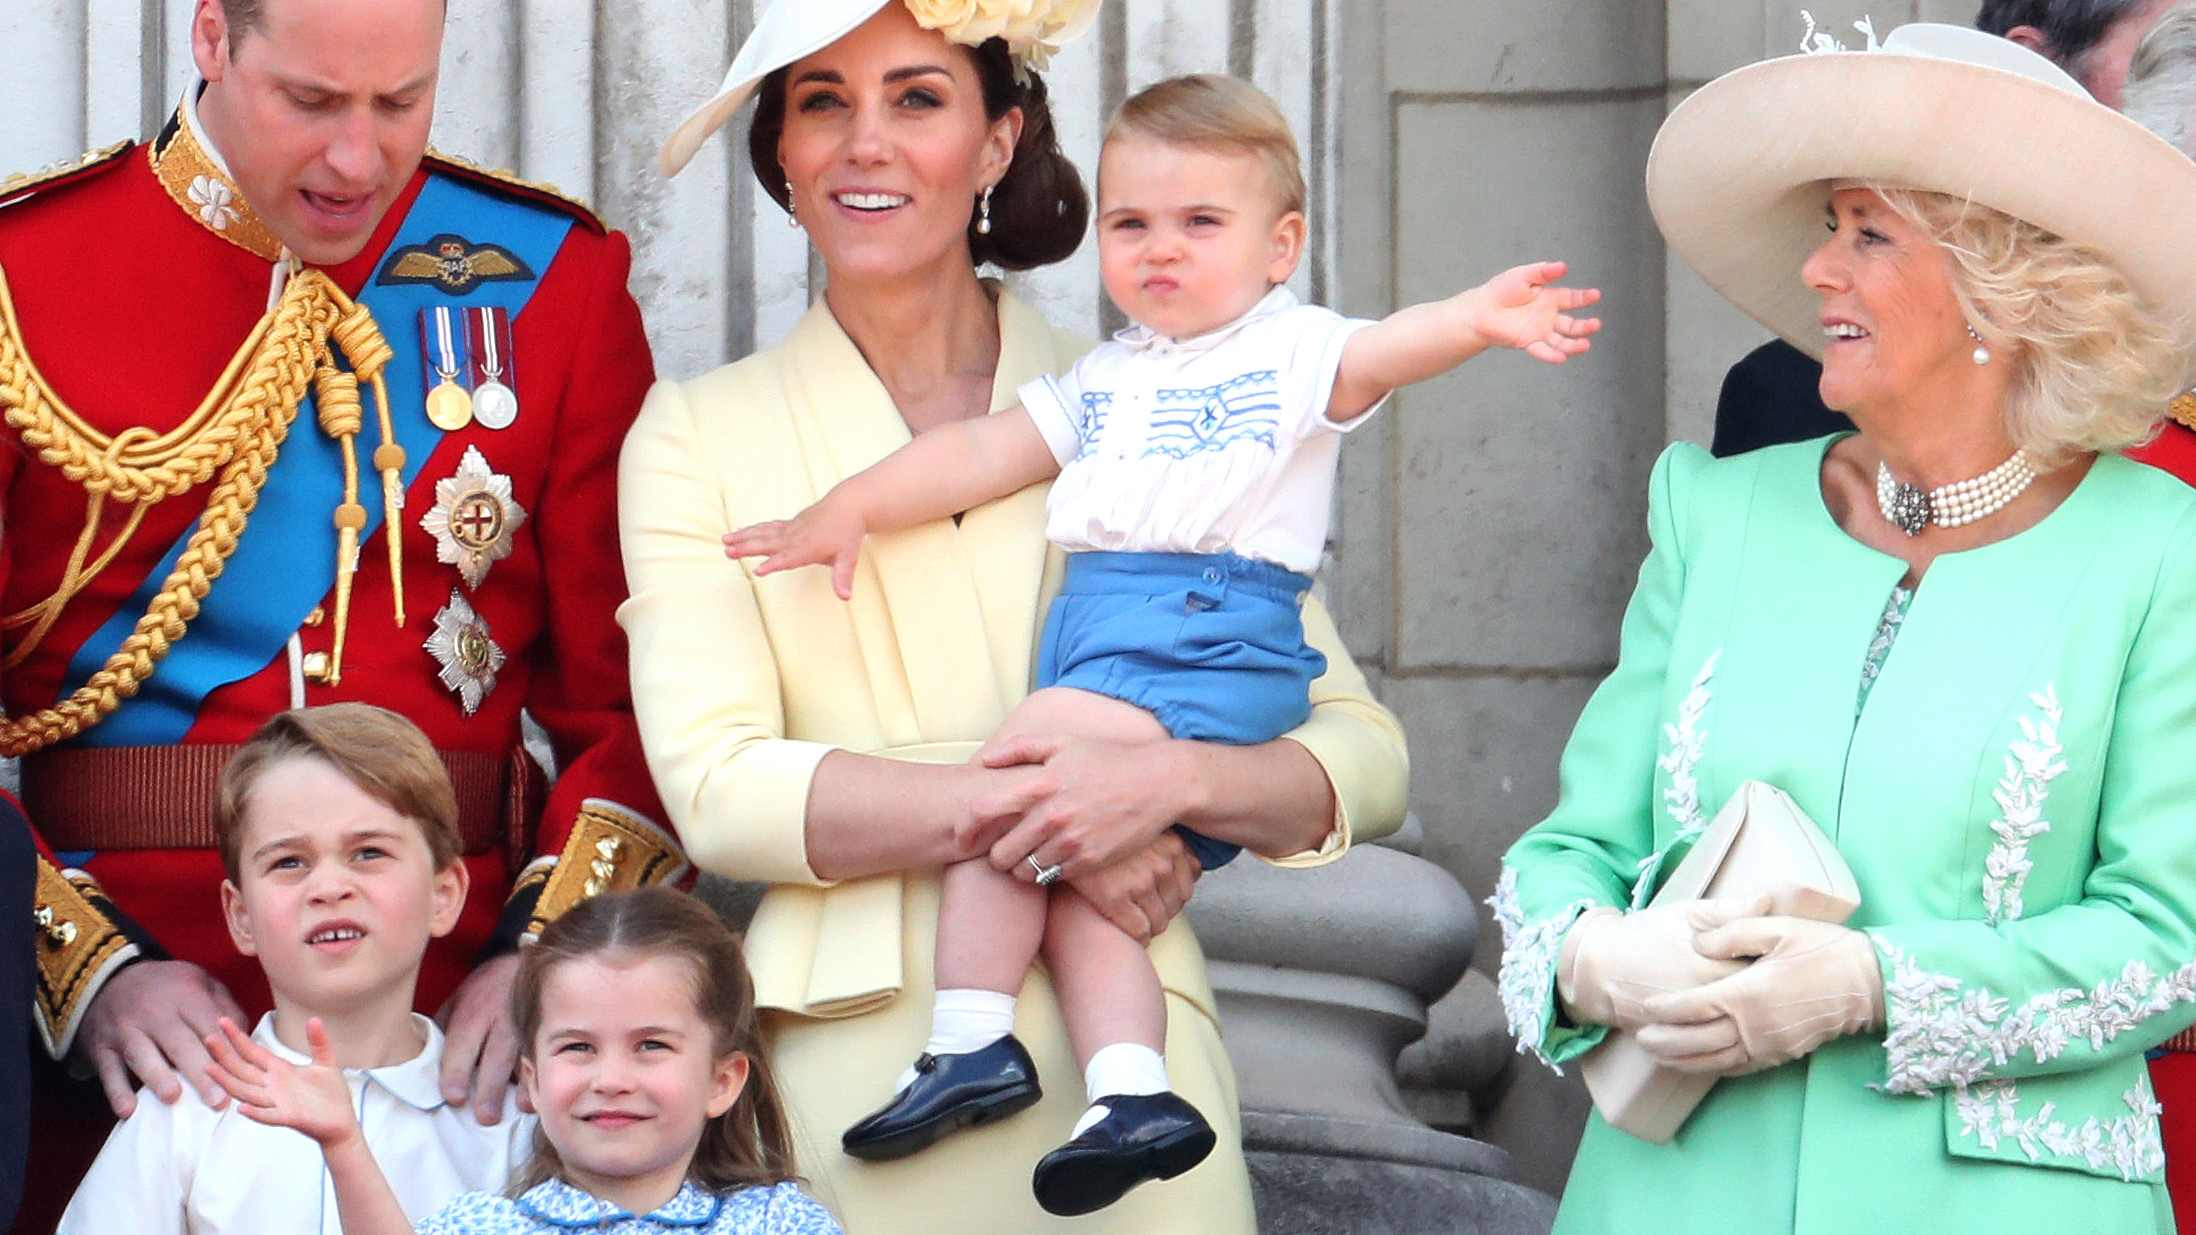 What a treat! Unseen photo of Prince William and Duchess Kate's three children emerges